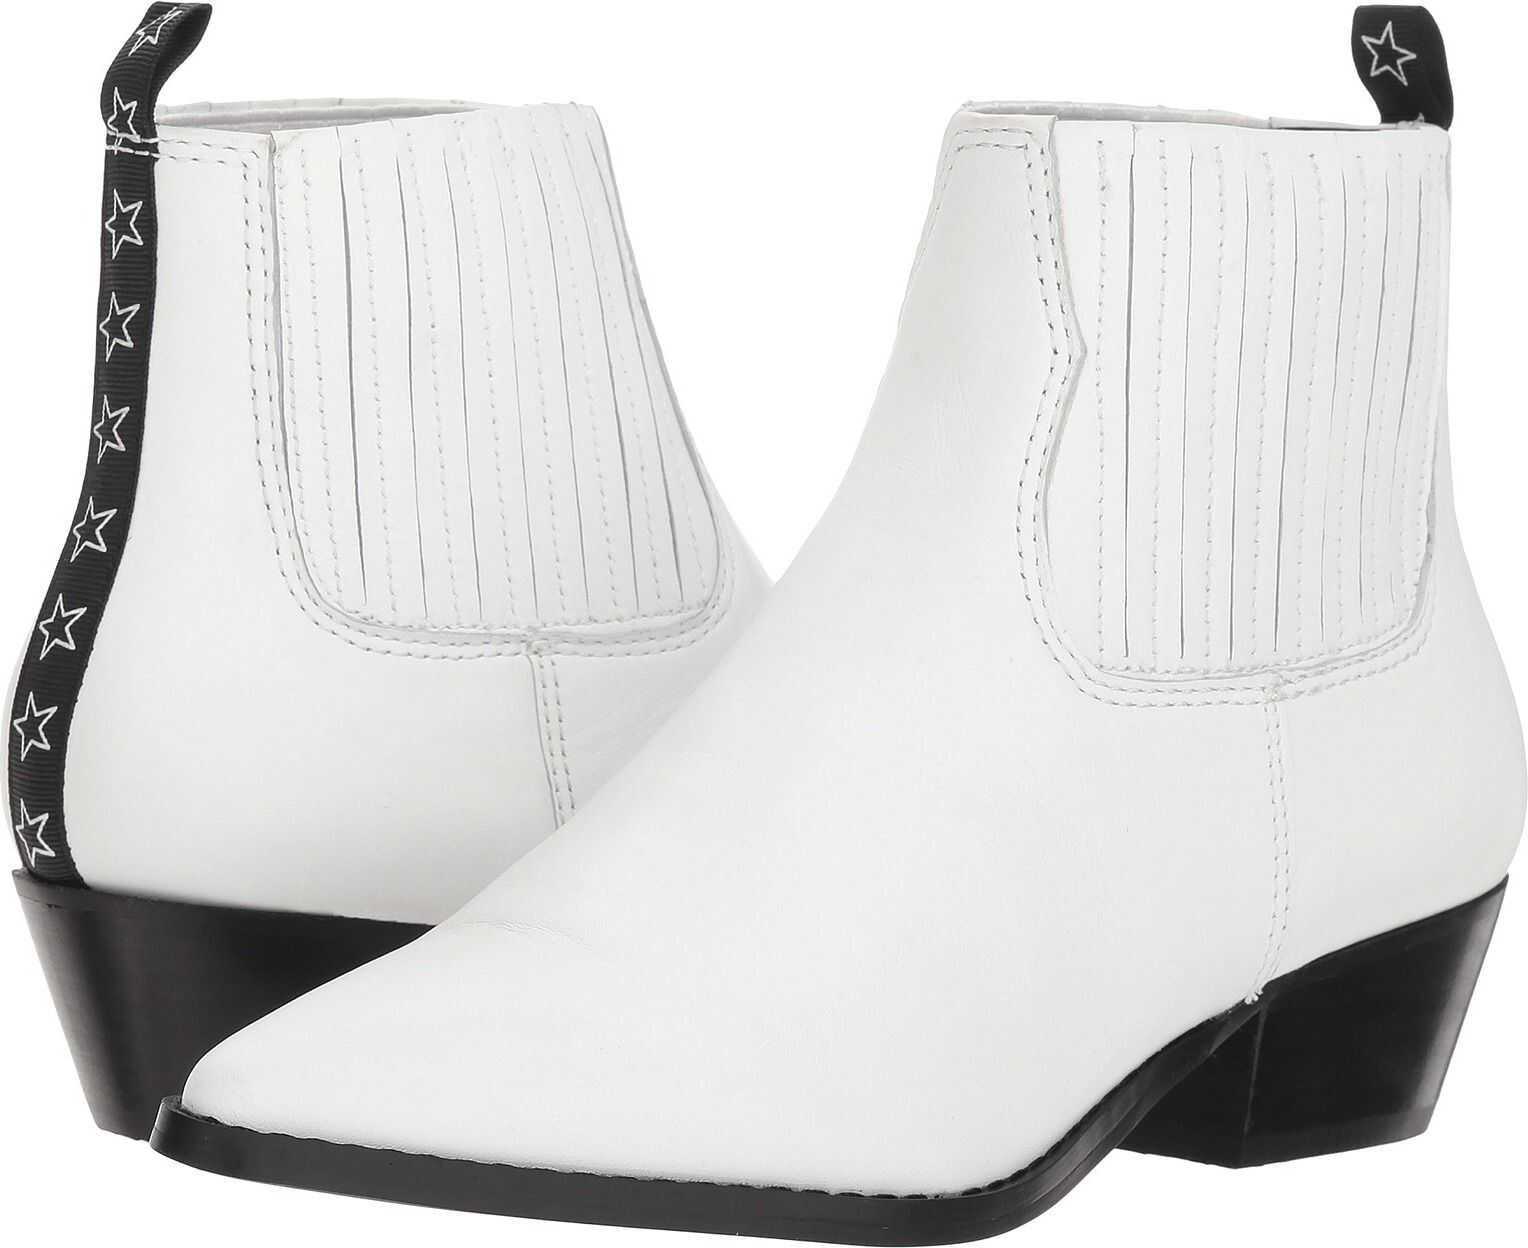 Steve Madden Westie White Leather